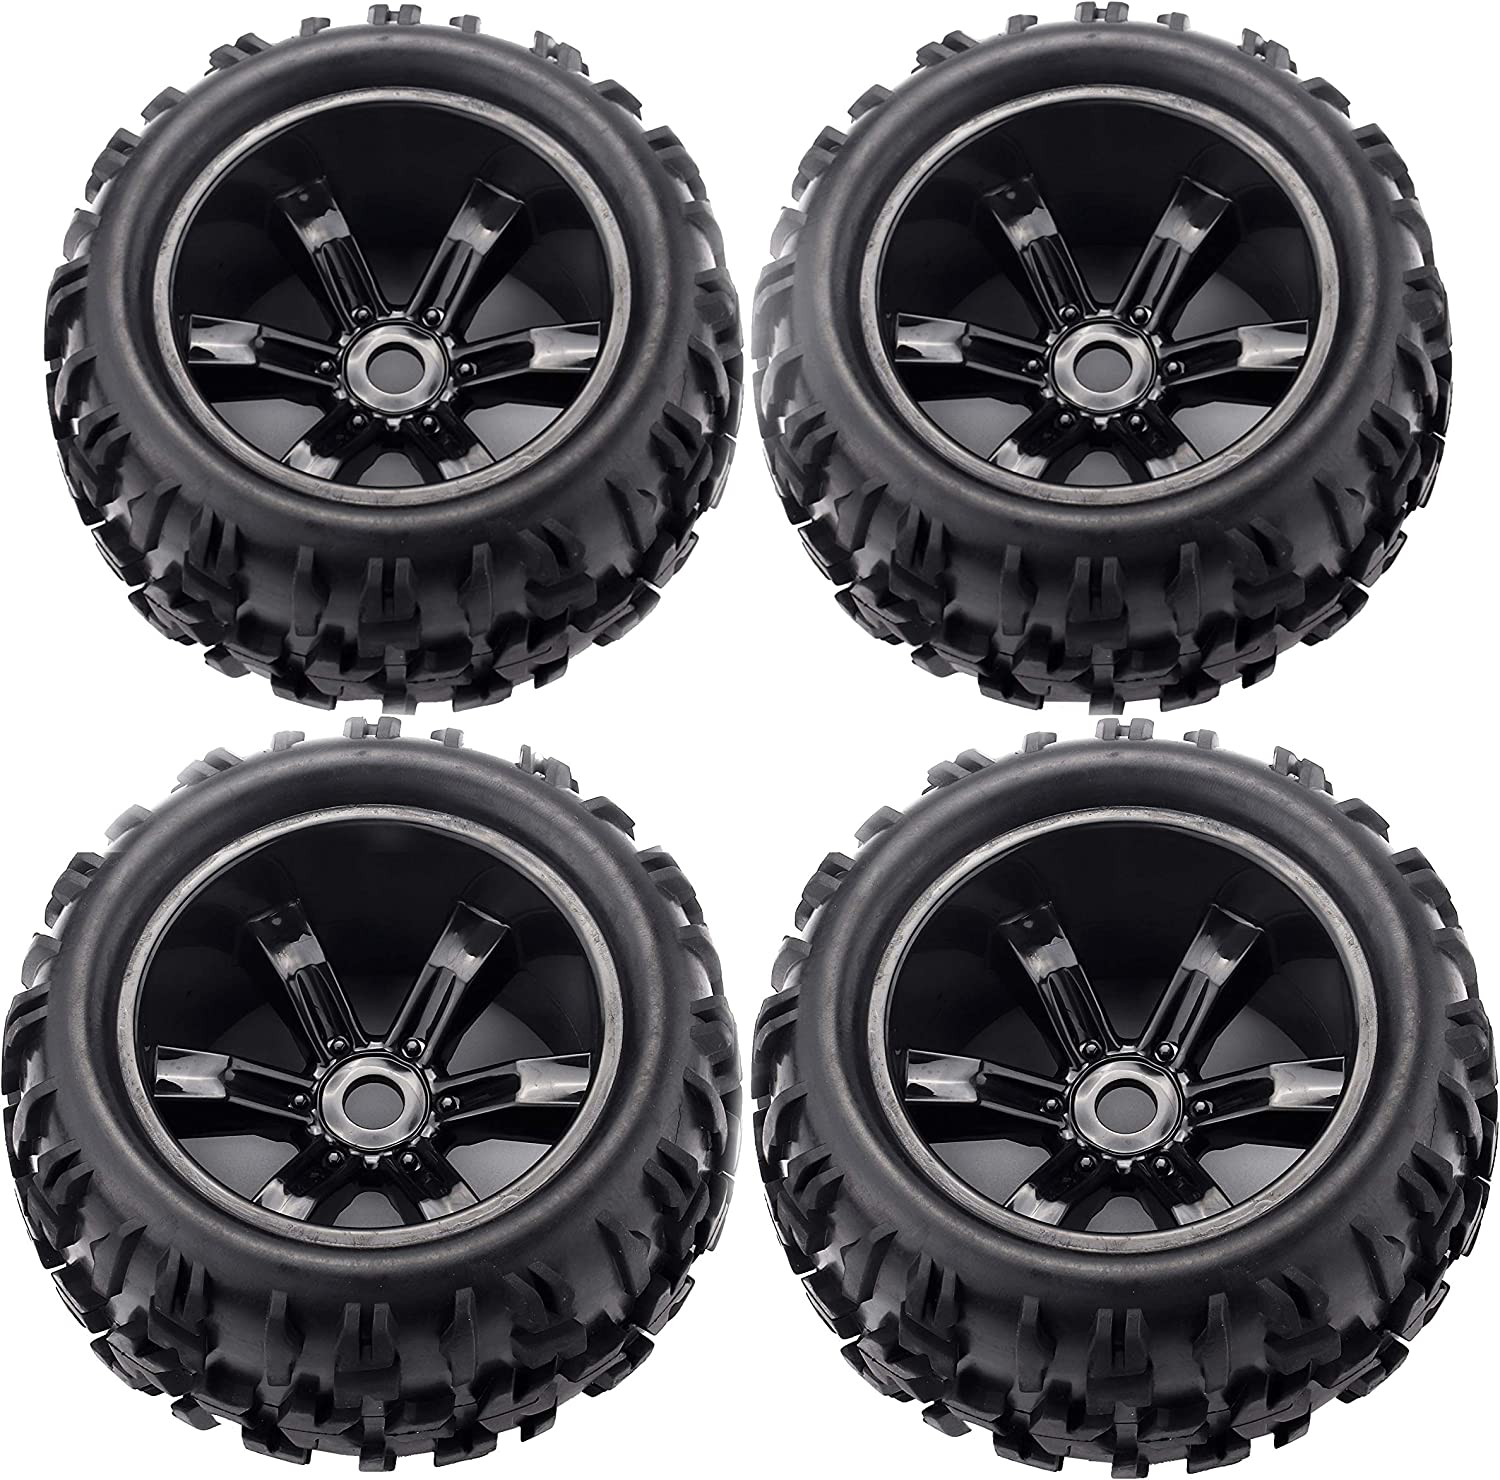 4Pcs 17mm Hex Rubber Tires/&Wheel Rim For HPI HSP 1:8 Scale On-Road RC Buggy Car